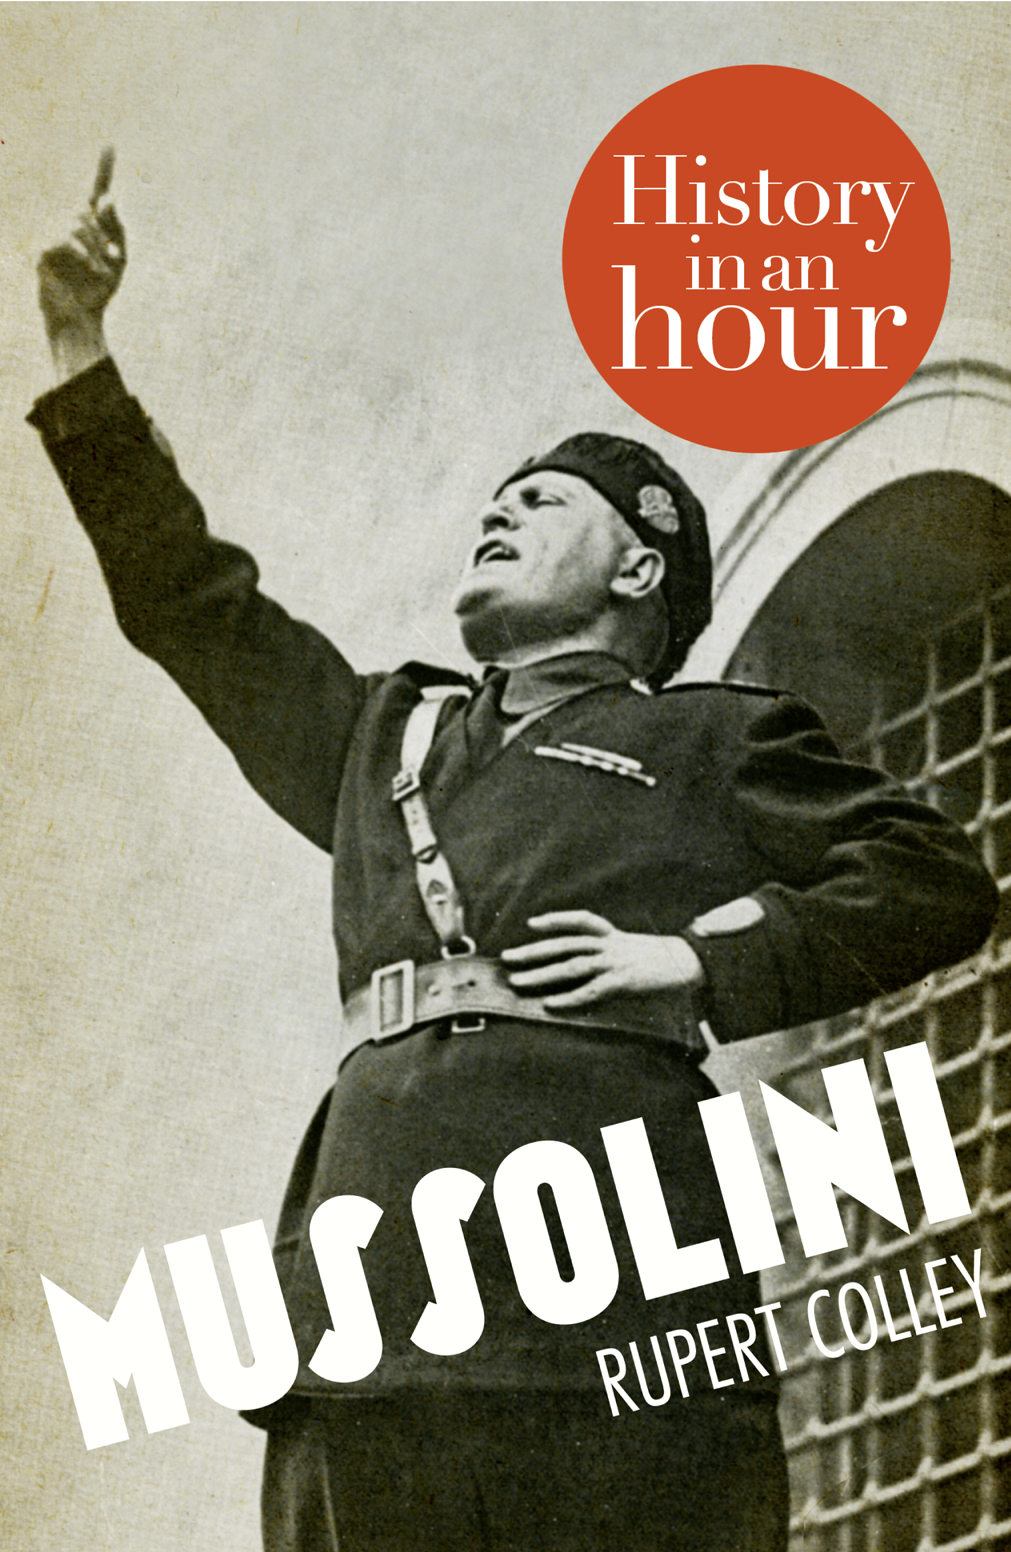 Rupert Colley Mussolini: History in an Hour rupert colley mussolini history in an hour page 9 page 7 page 7